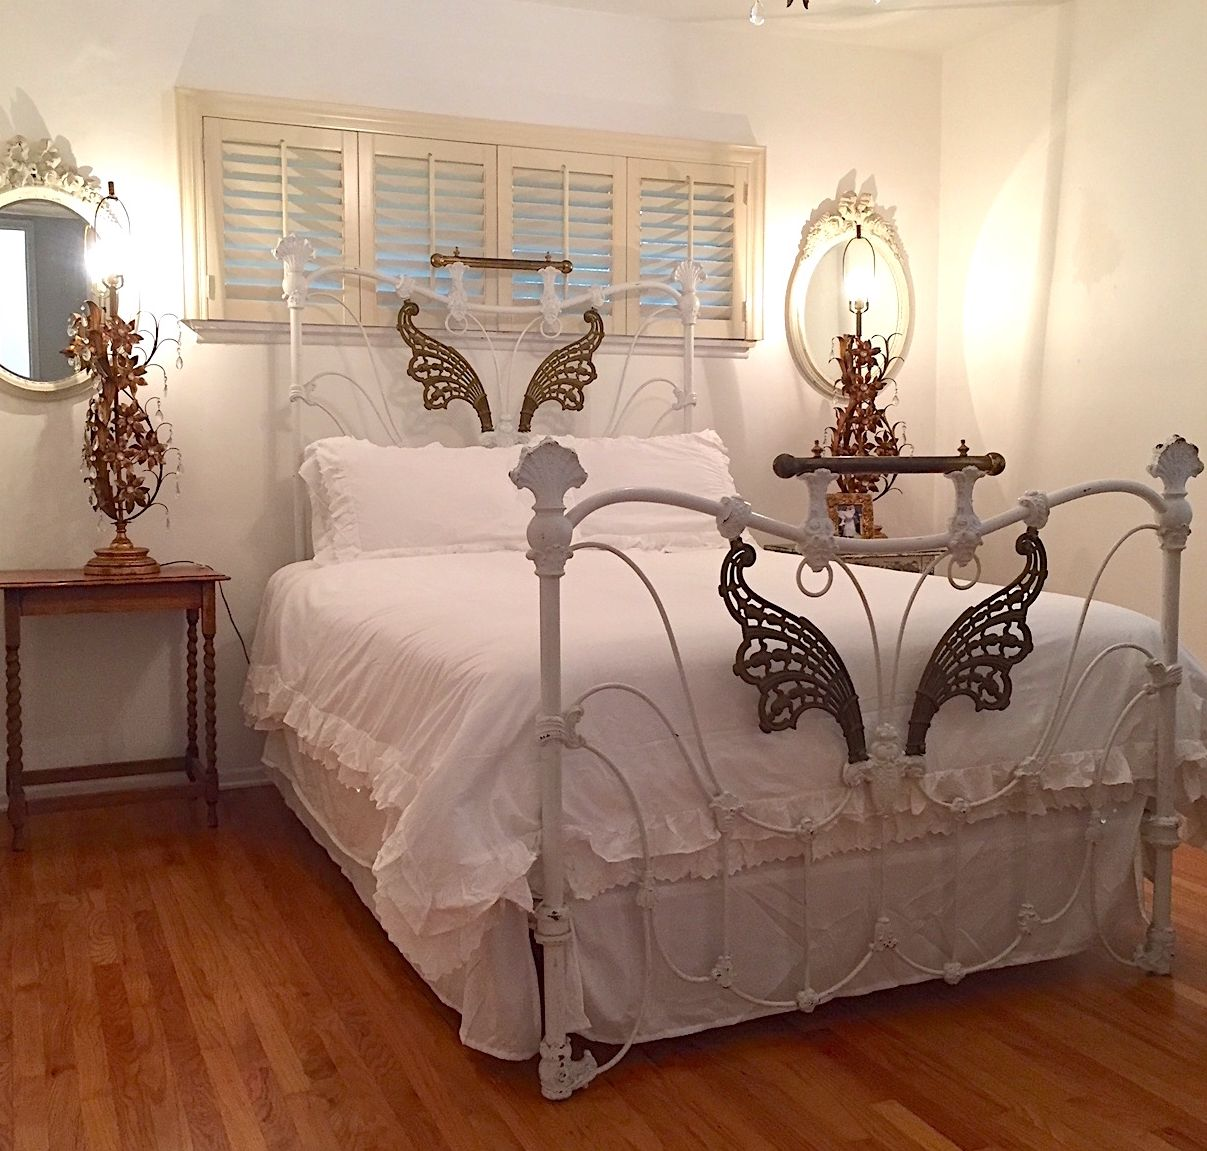 Few Beds Have The Distinct Victorian Style And Design As This